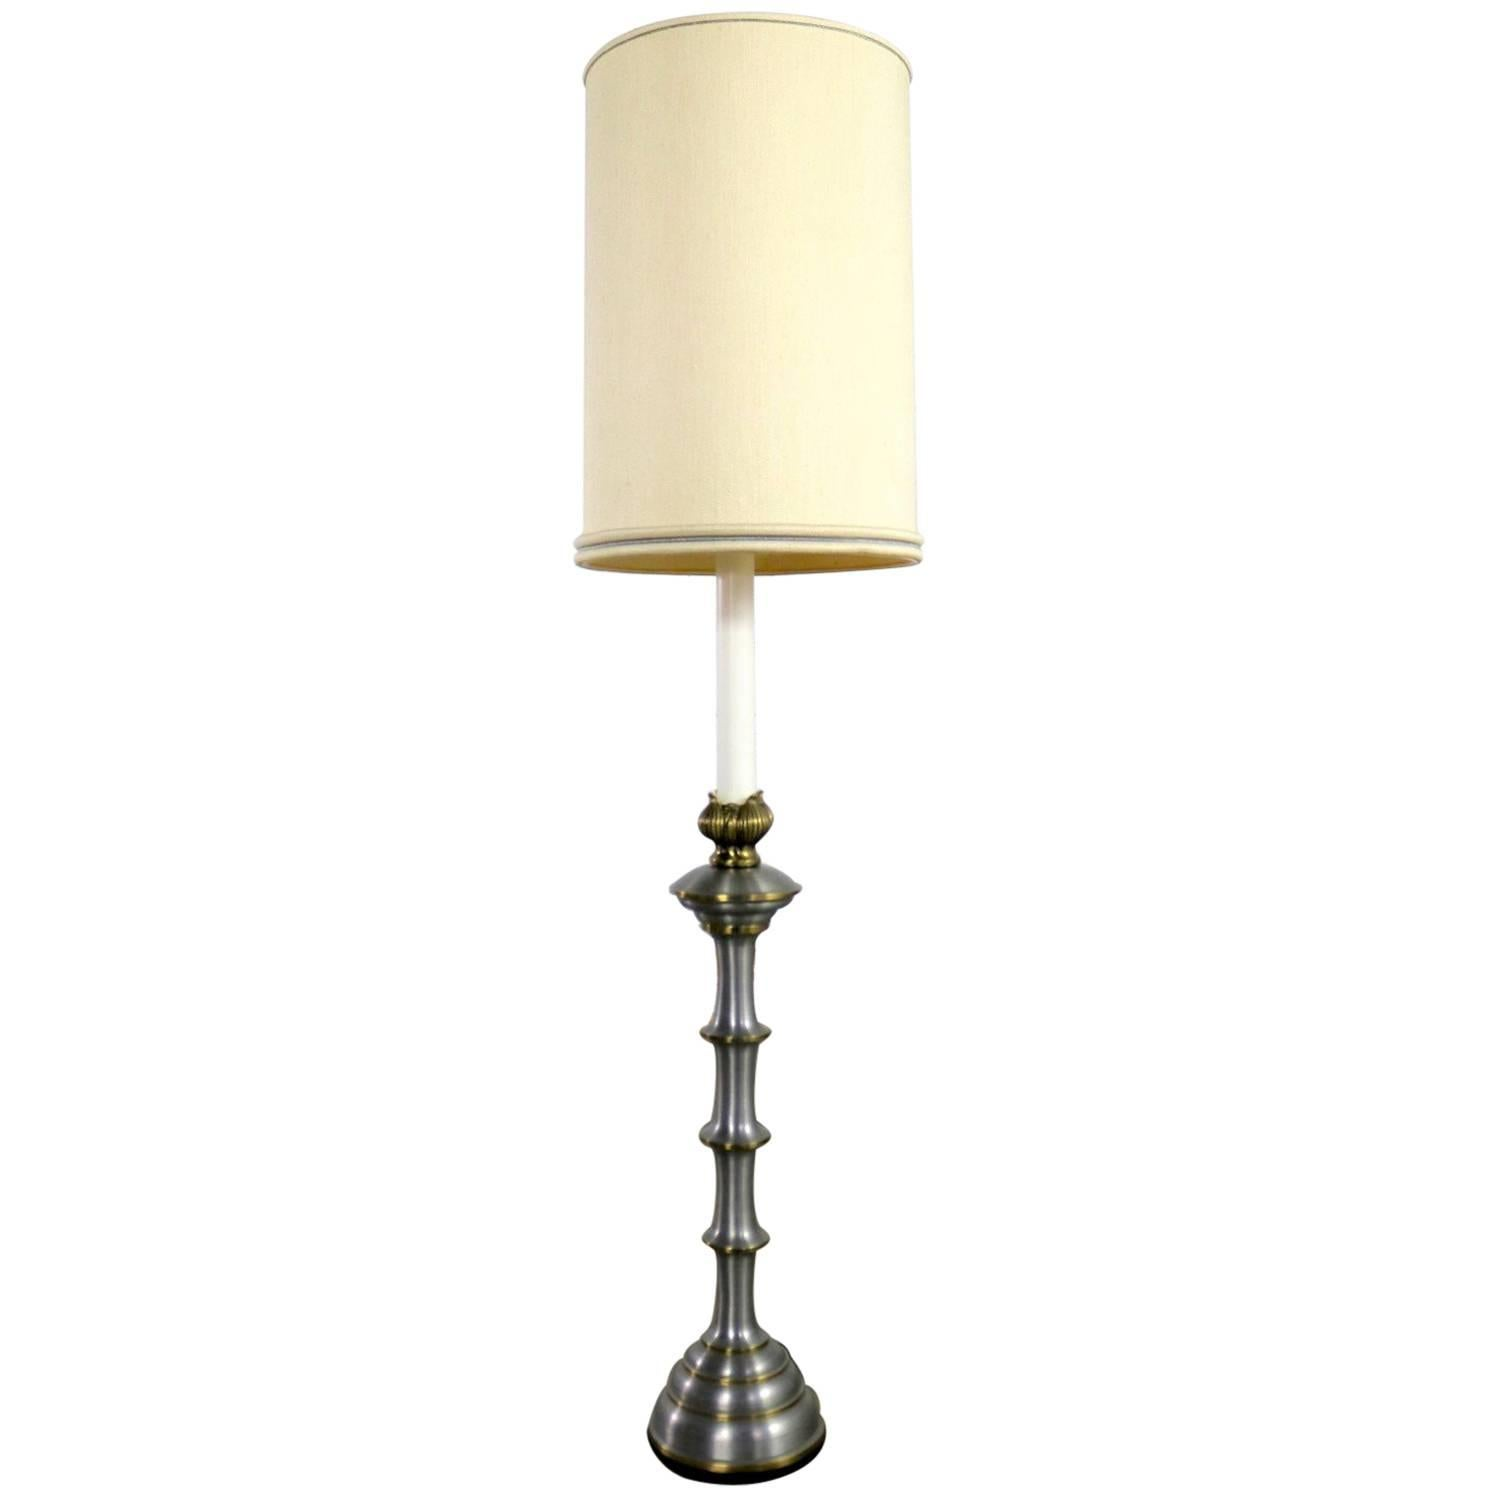 Stiffel Tall Table Lamp Or Low Floor Lamp Midcentury Brass Brushed  Stainless For Sale